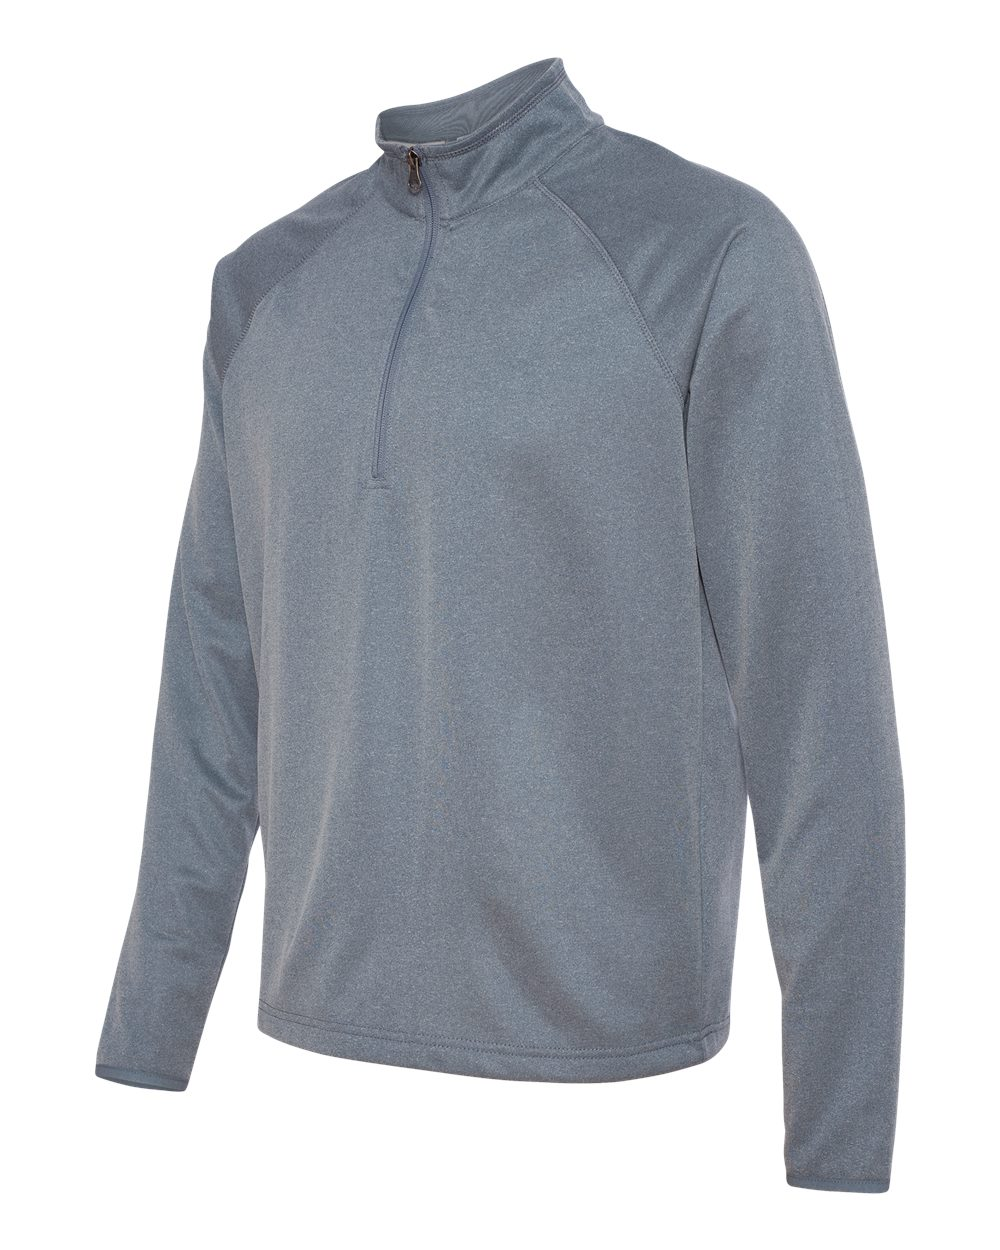 Colorado Clothing 7393 Heather Fleece Quarter-Zip Pullover